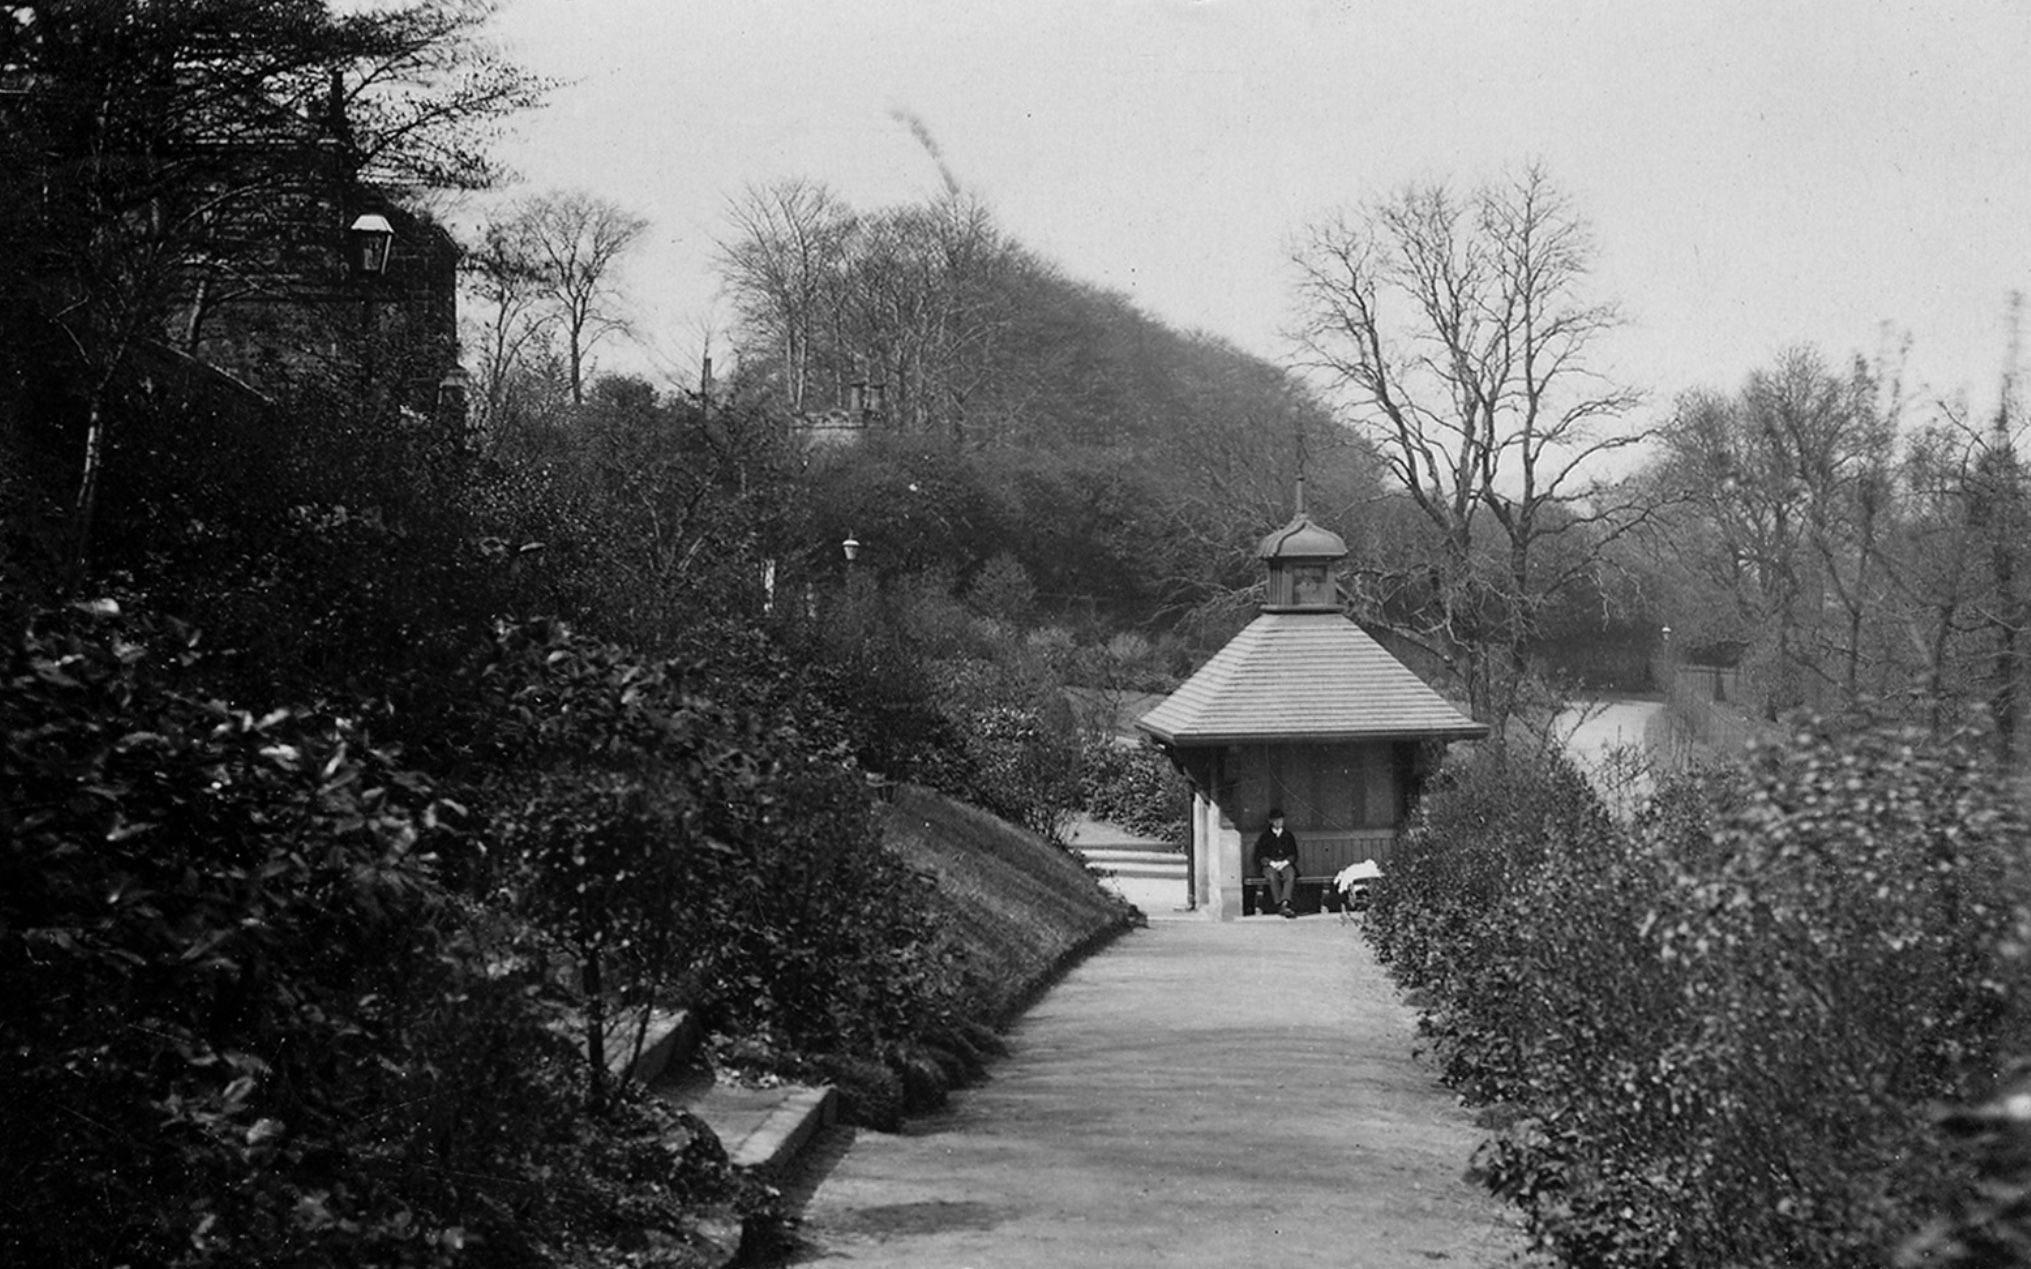 Warburton Memorial Shelter/Chinese Pavilion [demolished], Woodhouse Ridge, circa 1913